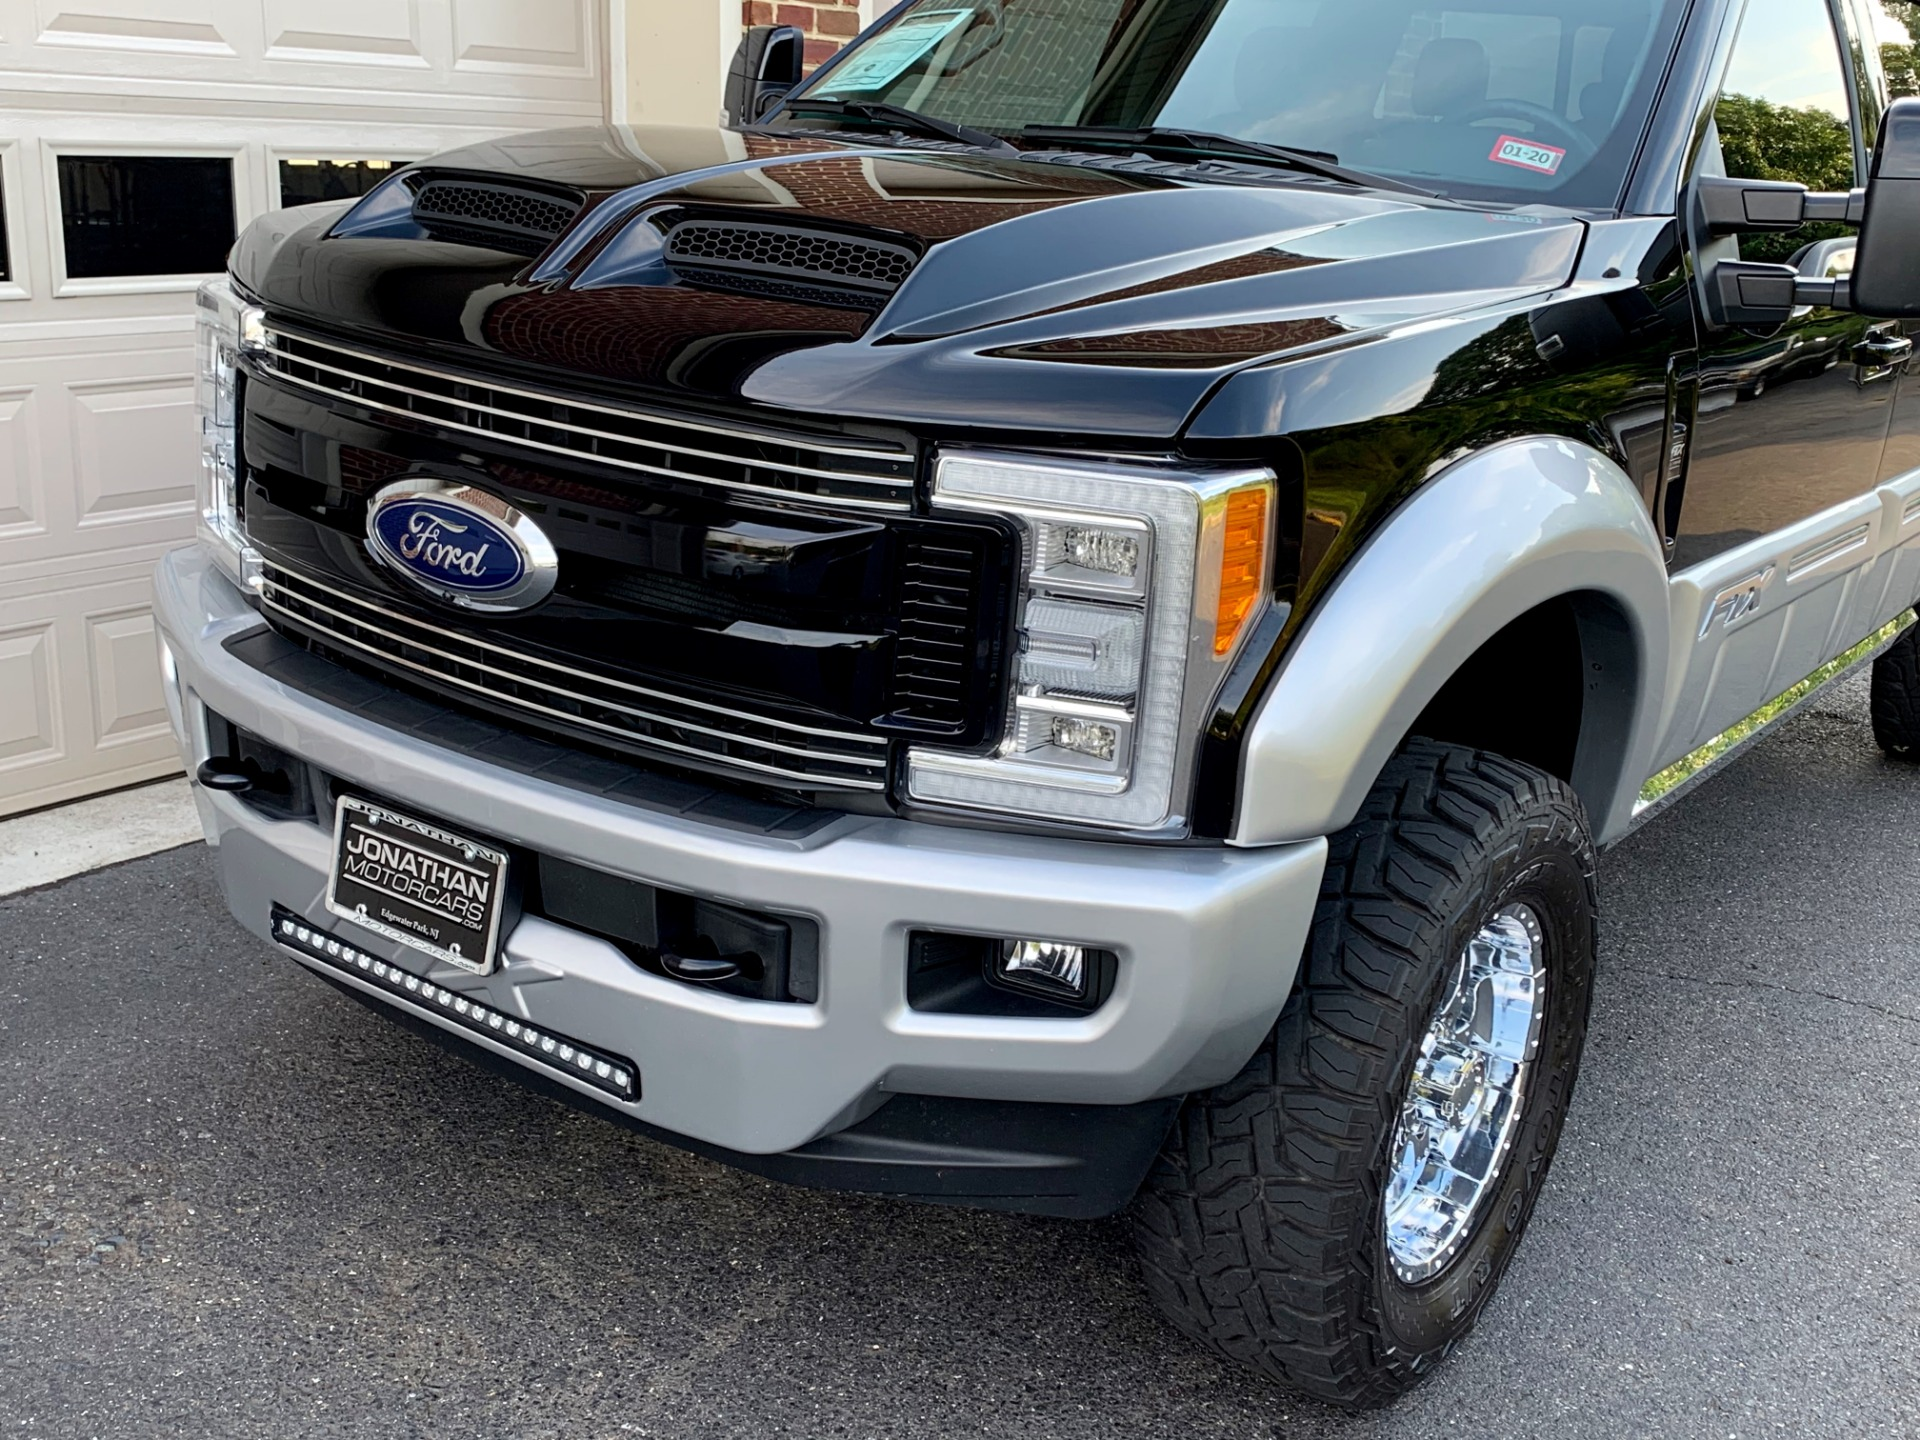 Used-2017-Ford-F-250-Super-Duty-Lariat-Tuscany-FTX